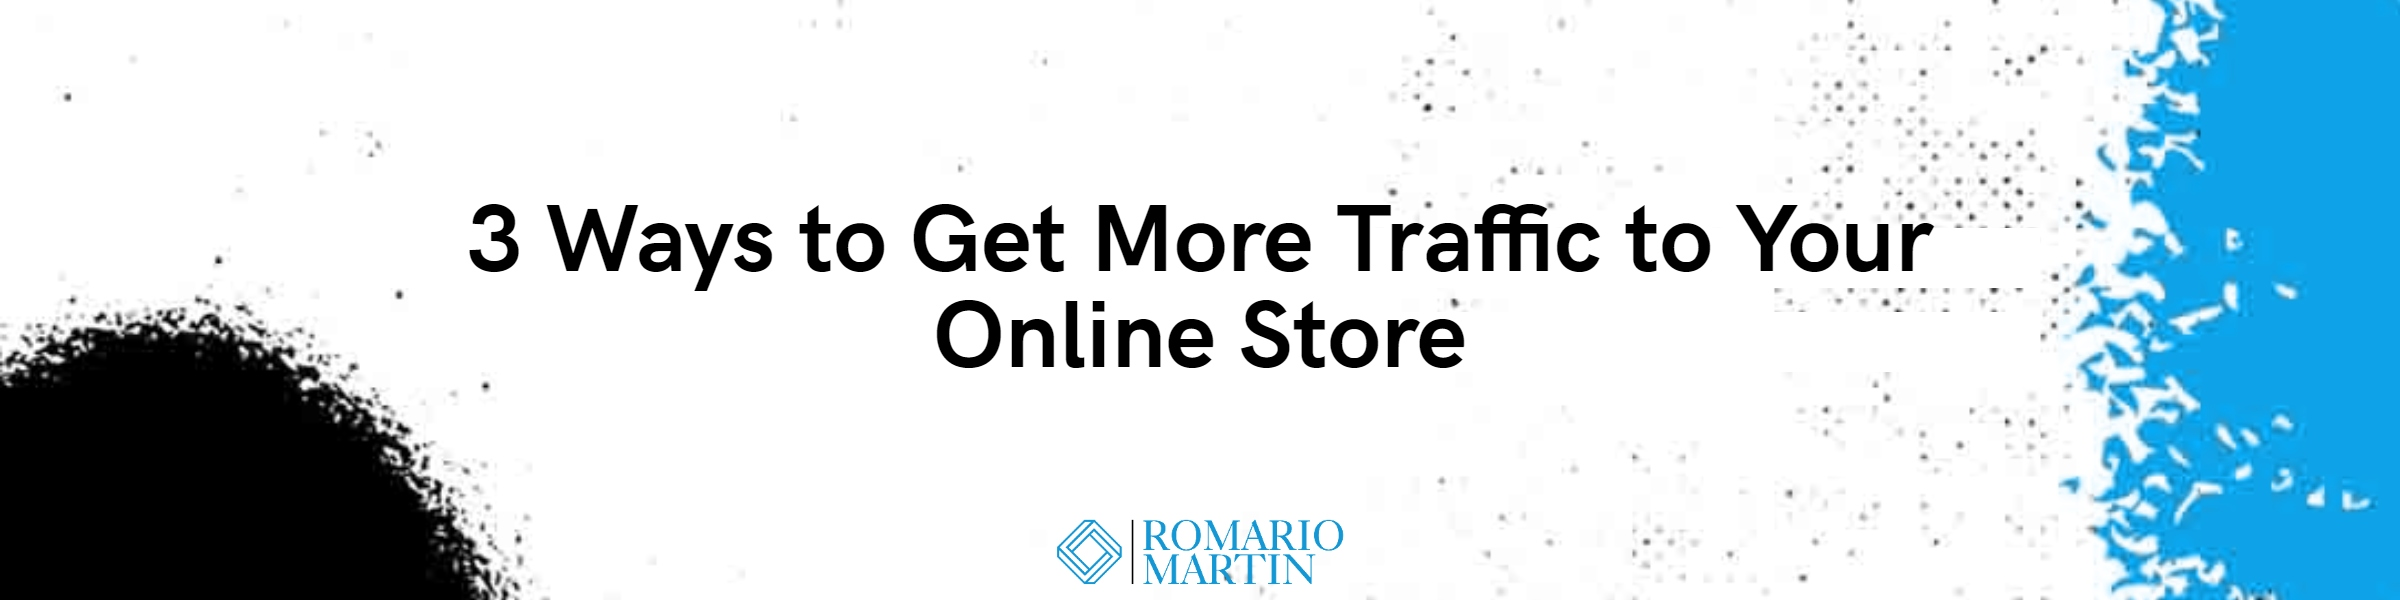 3 Ways to Get More Qualified Traffic to Your Online Store